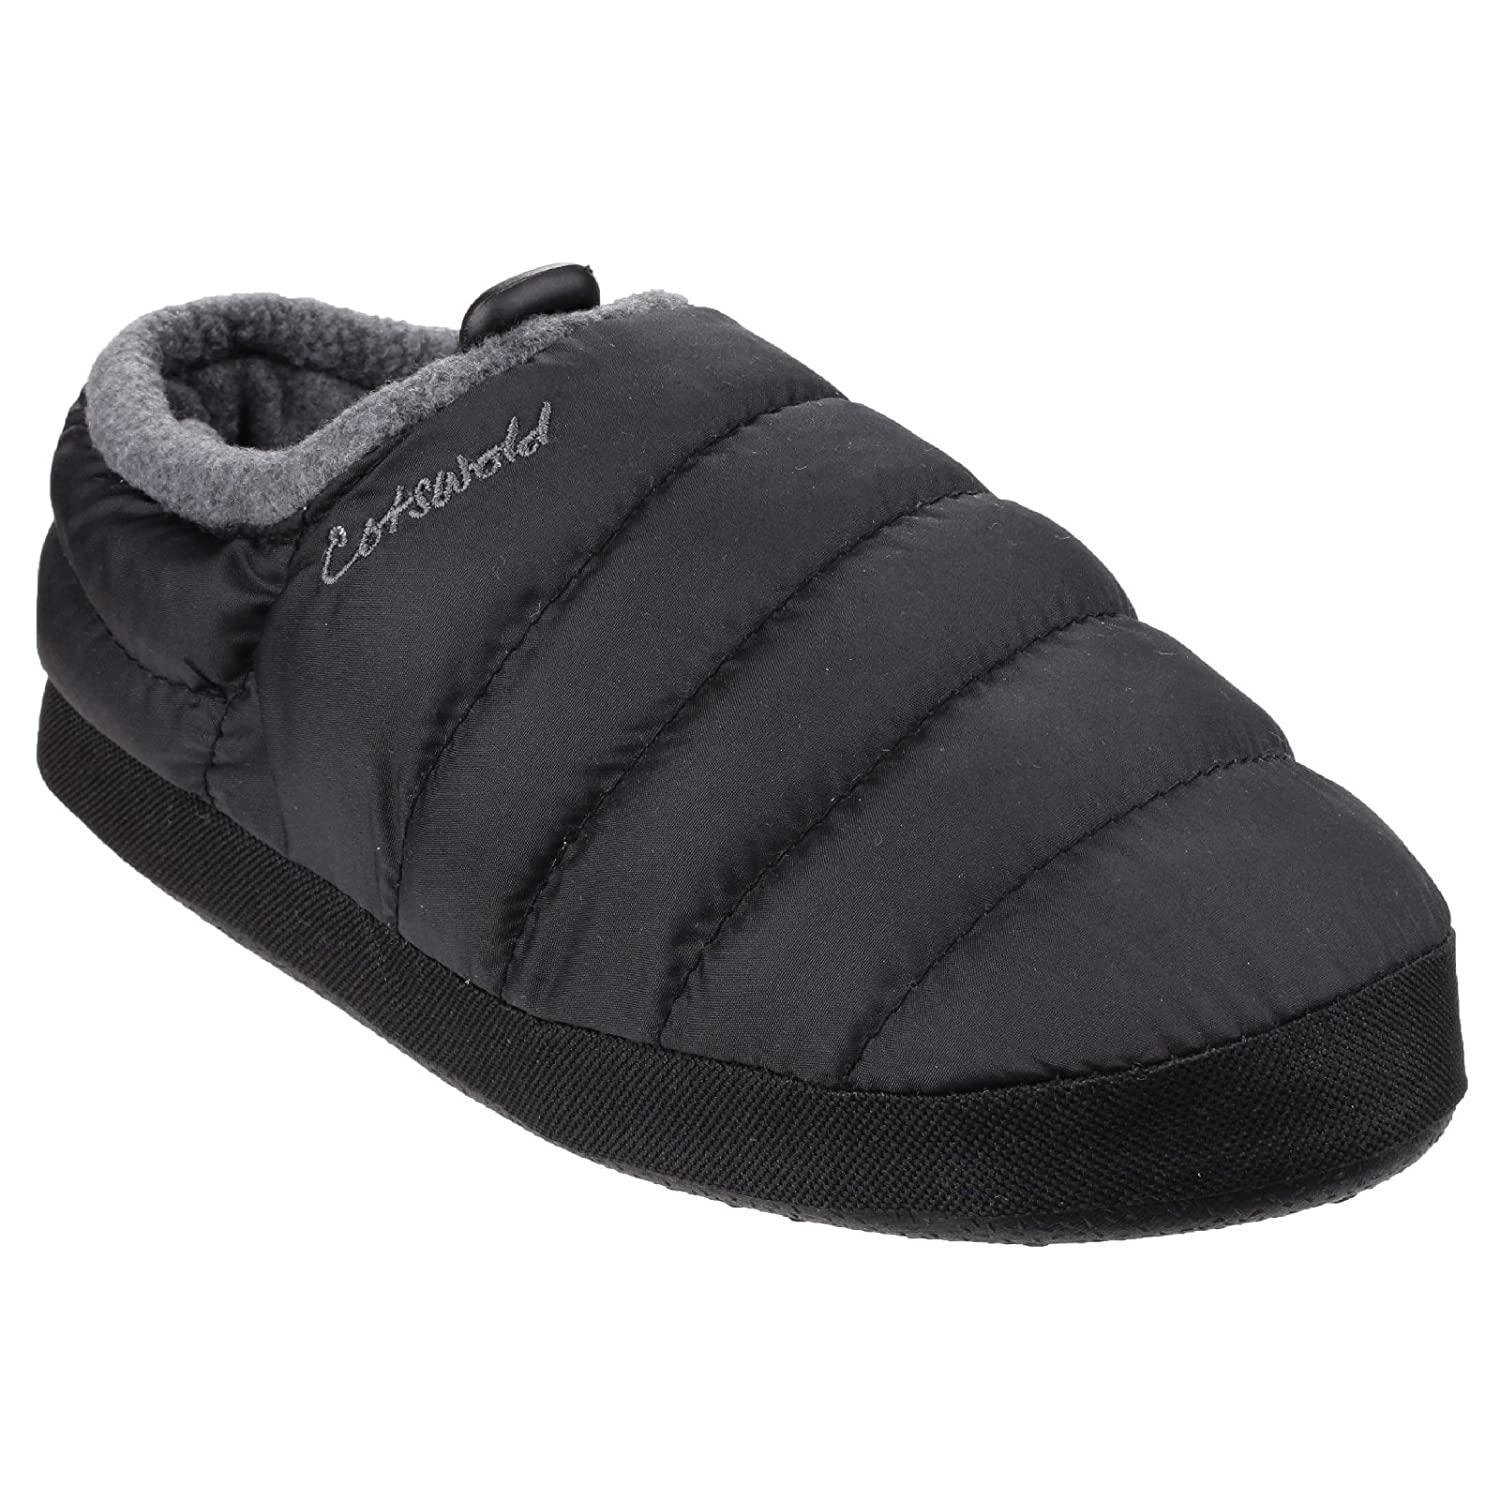 sc 1 st  Amazon UK & Cotswold Camping Womens Slippers: Amazon.co.uk: Shoes u0026 Bags